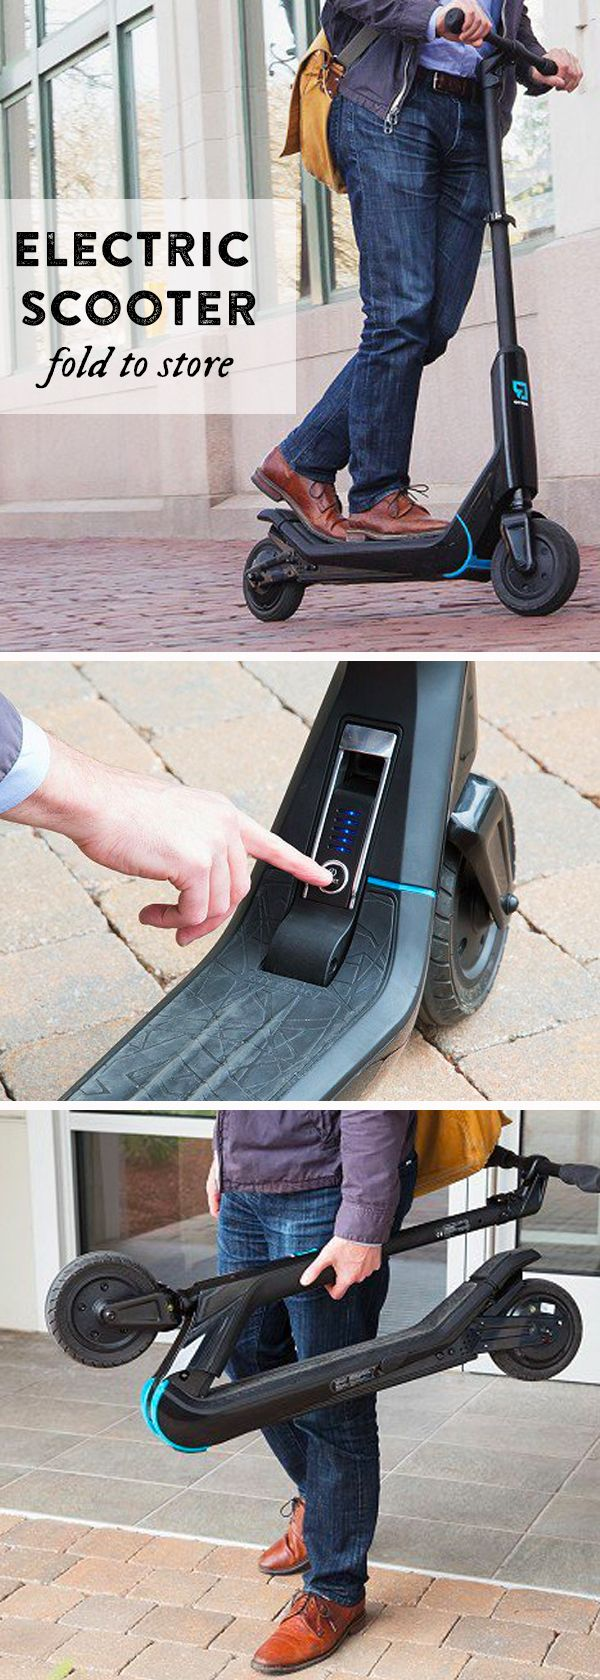 CityBug2  Fitness Gear  Kick scooter, Electric scooter, Electric Cars